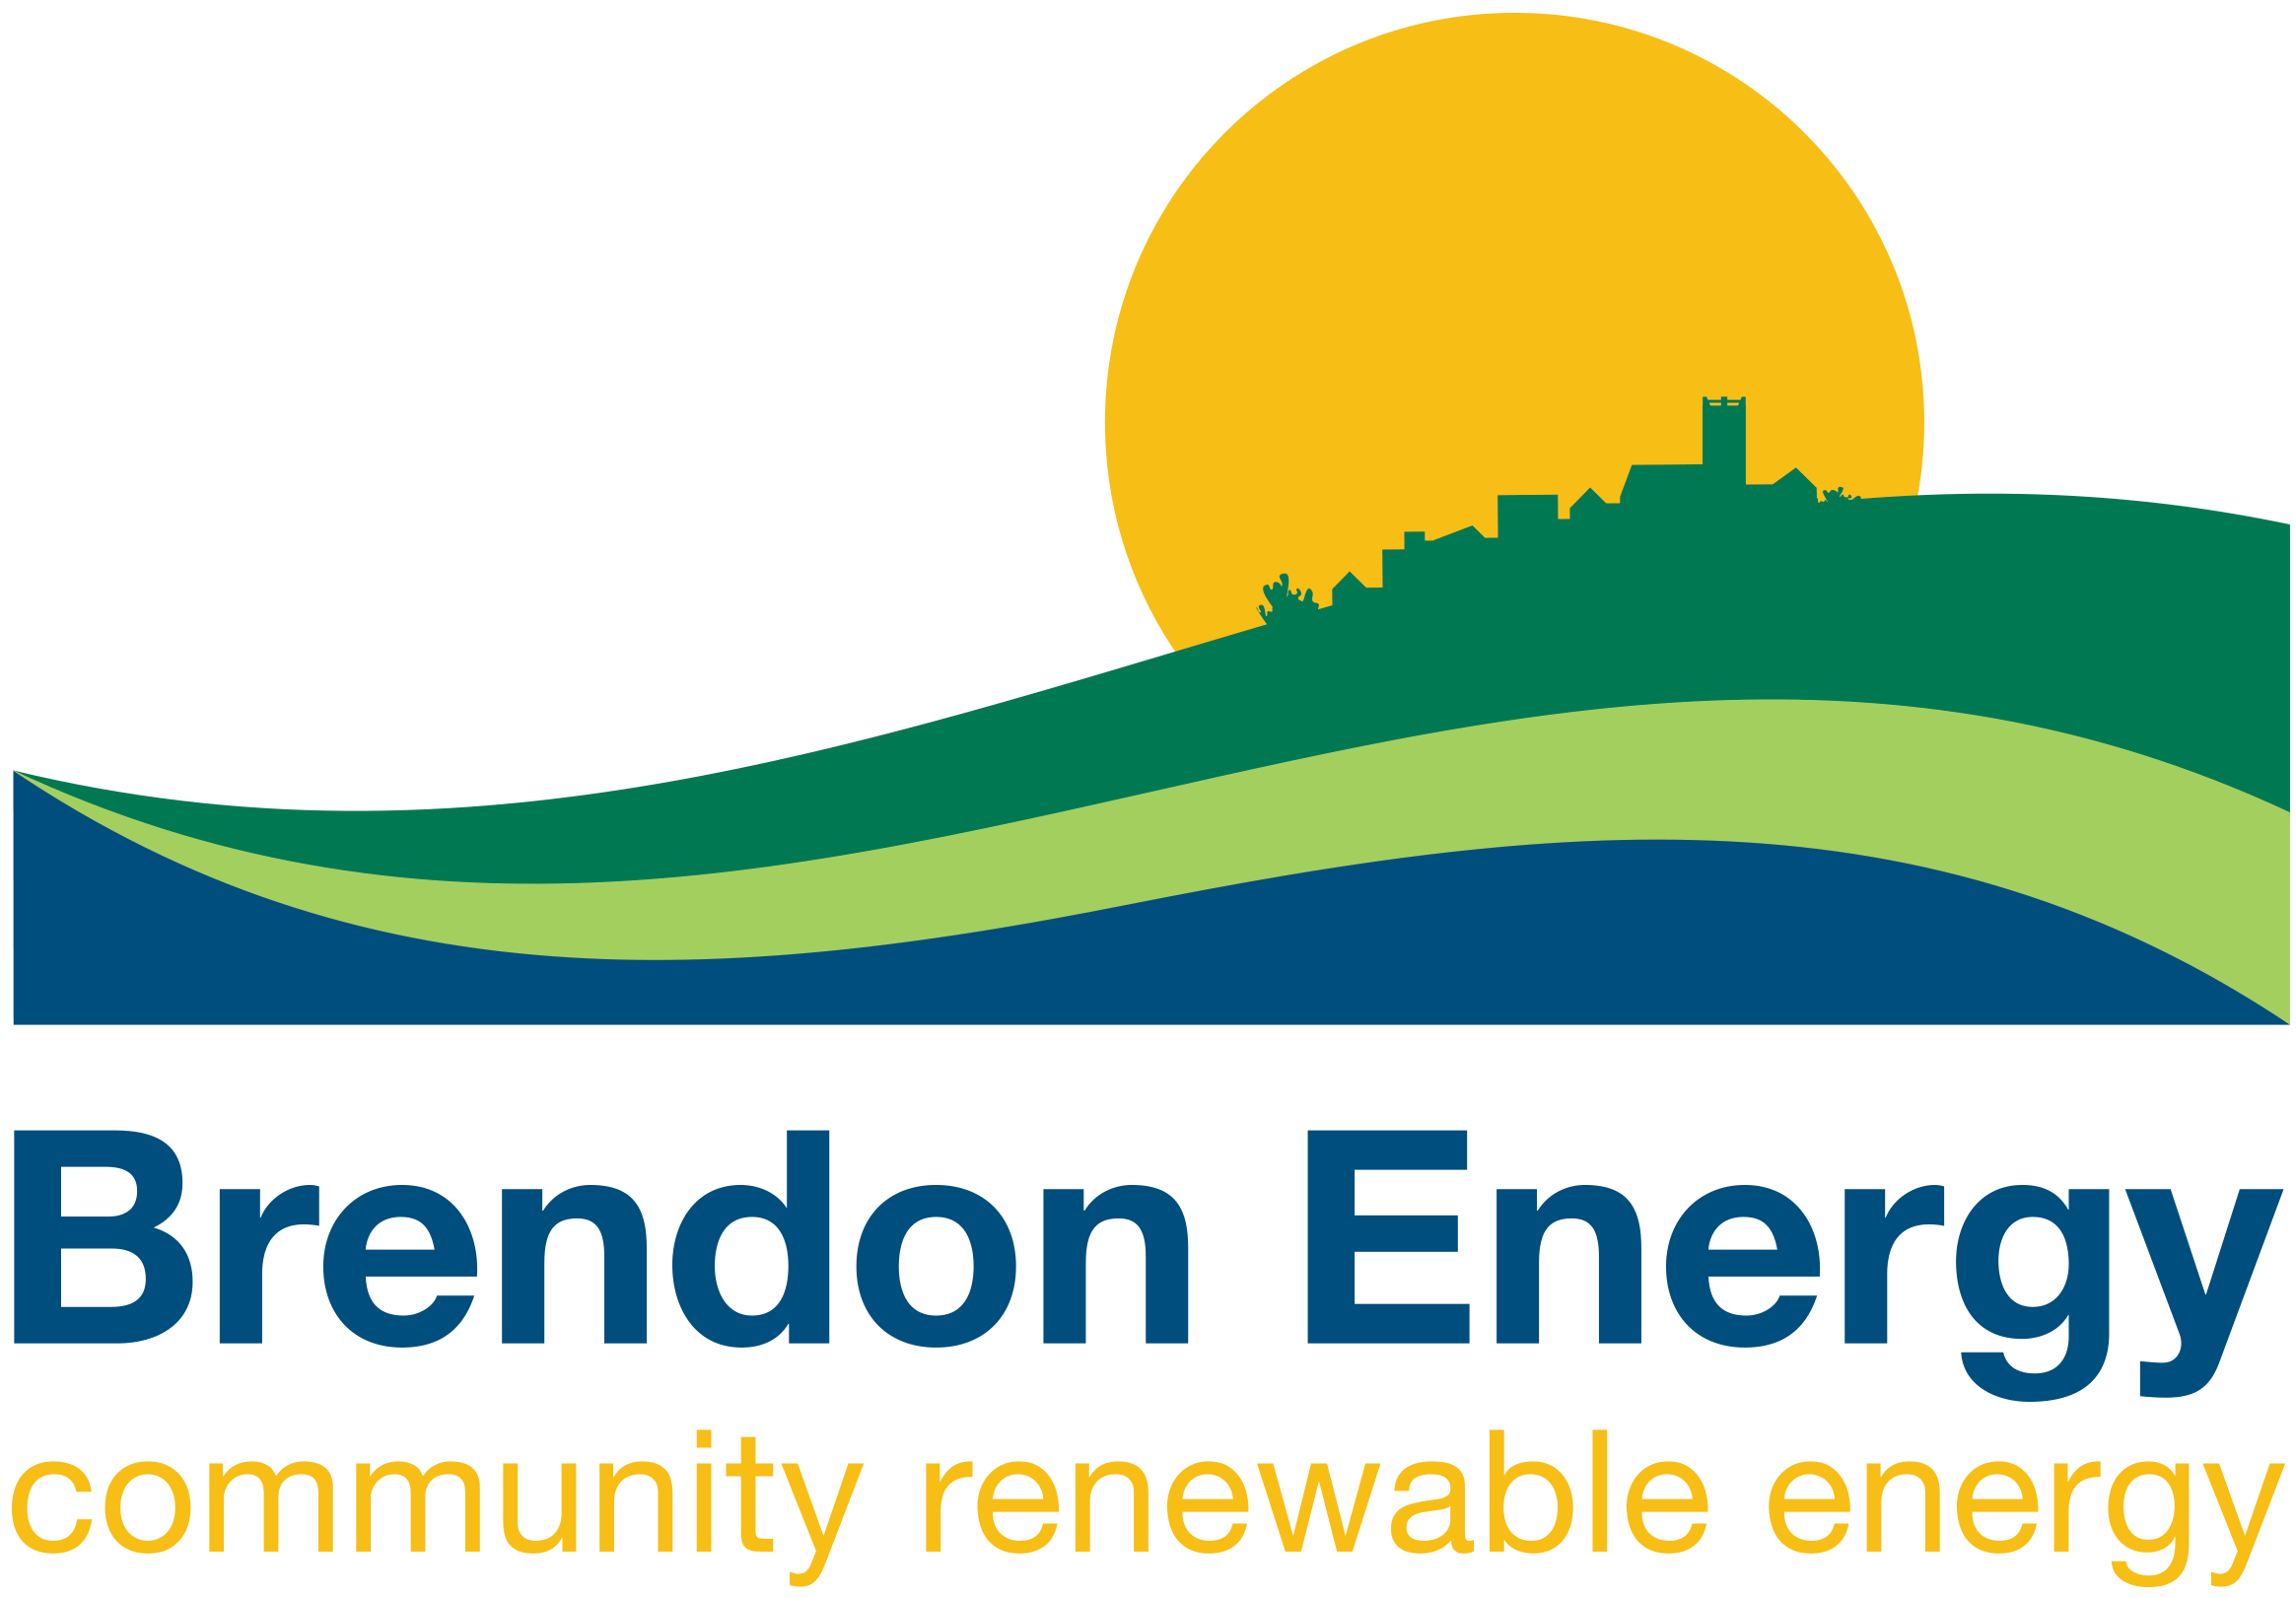 Brendon Energy logo